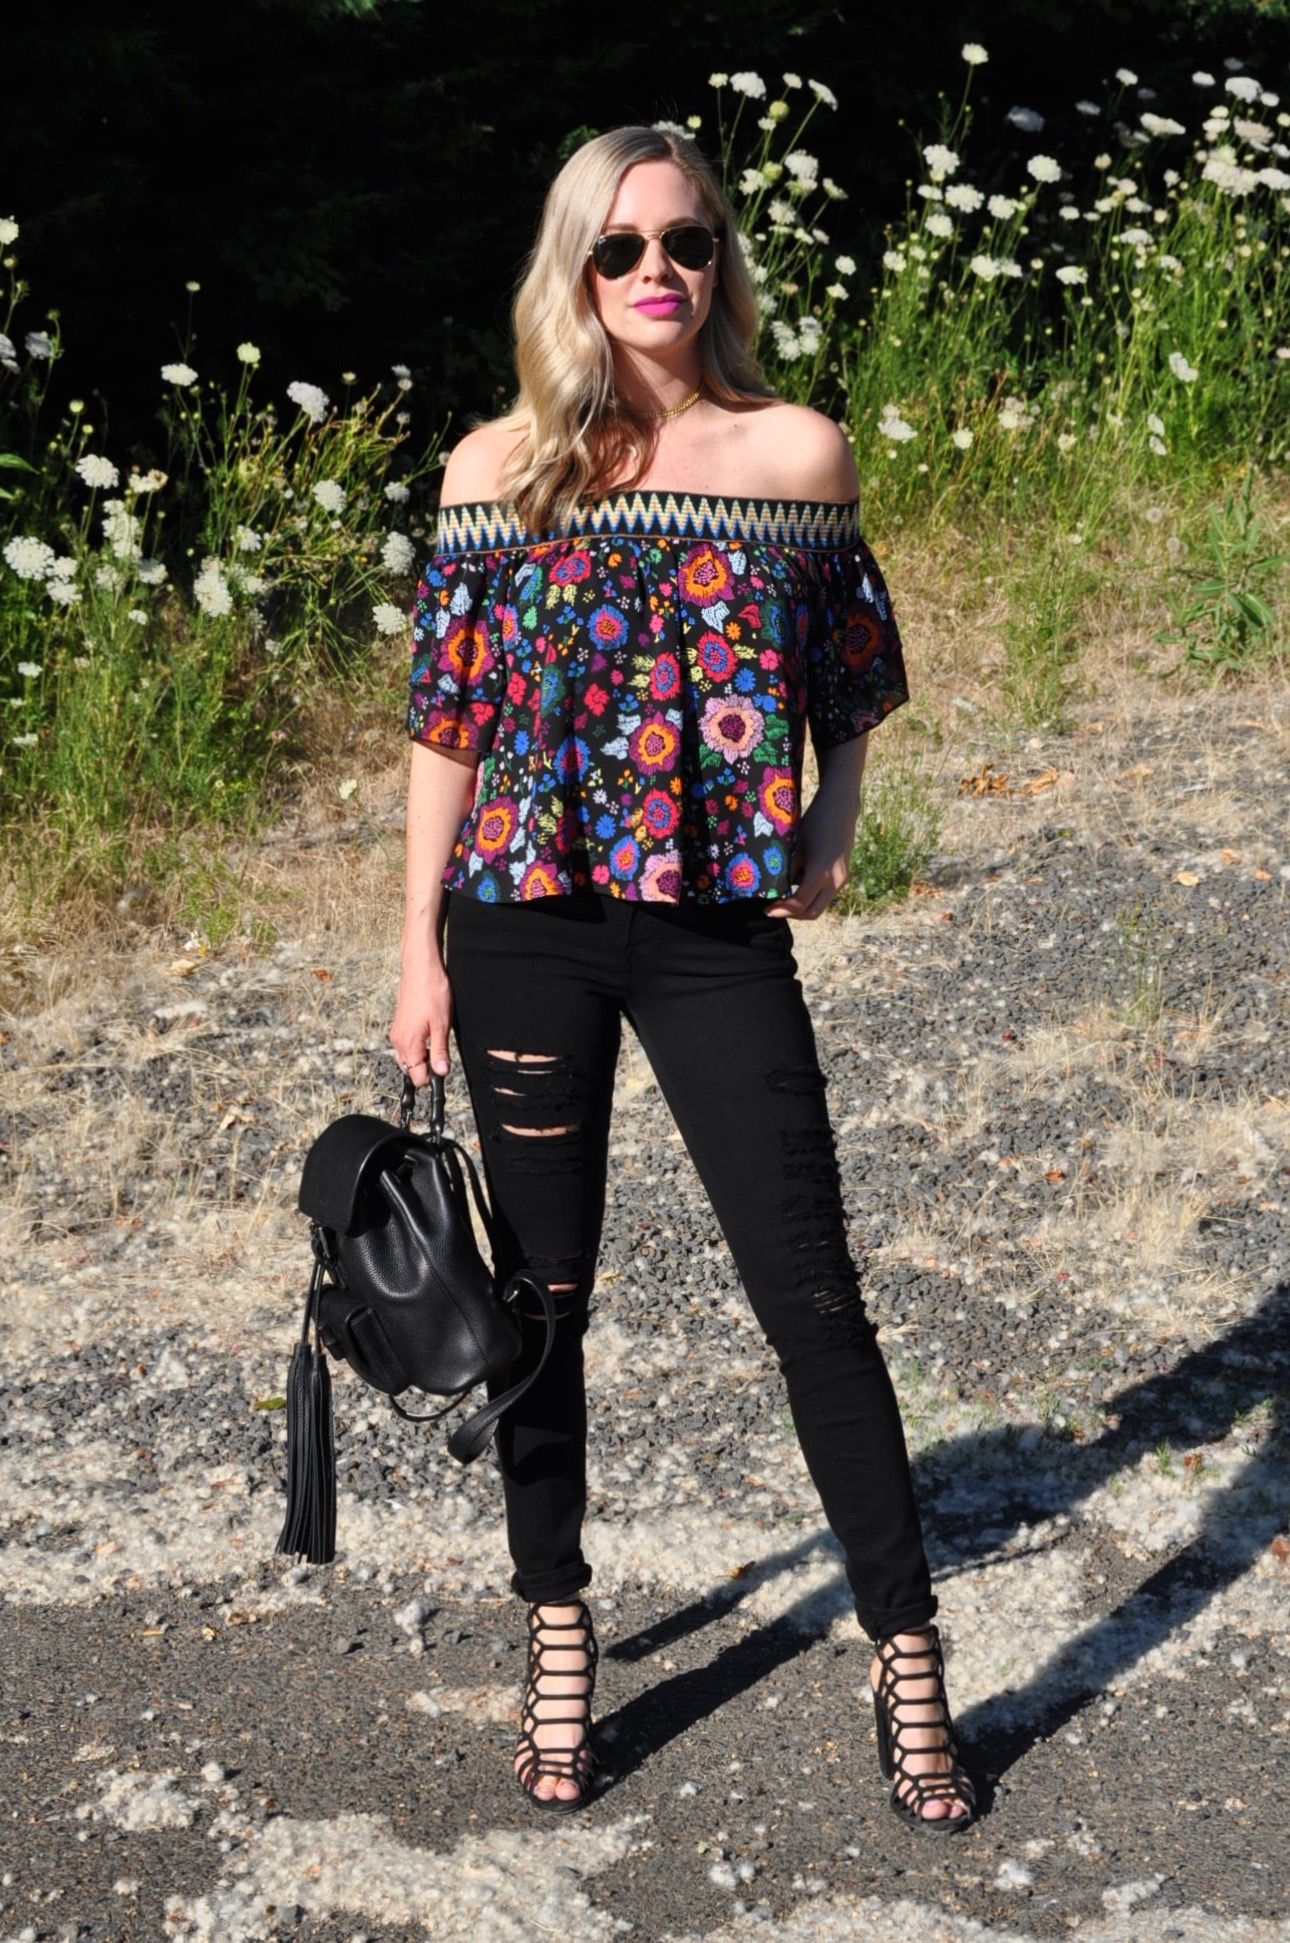 c8884012f373f Distressed jeans with cage sandals and an off the shoulder top. (Via blog  Confessions of a Product Junkie.)